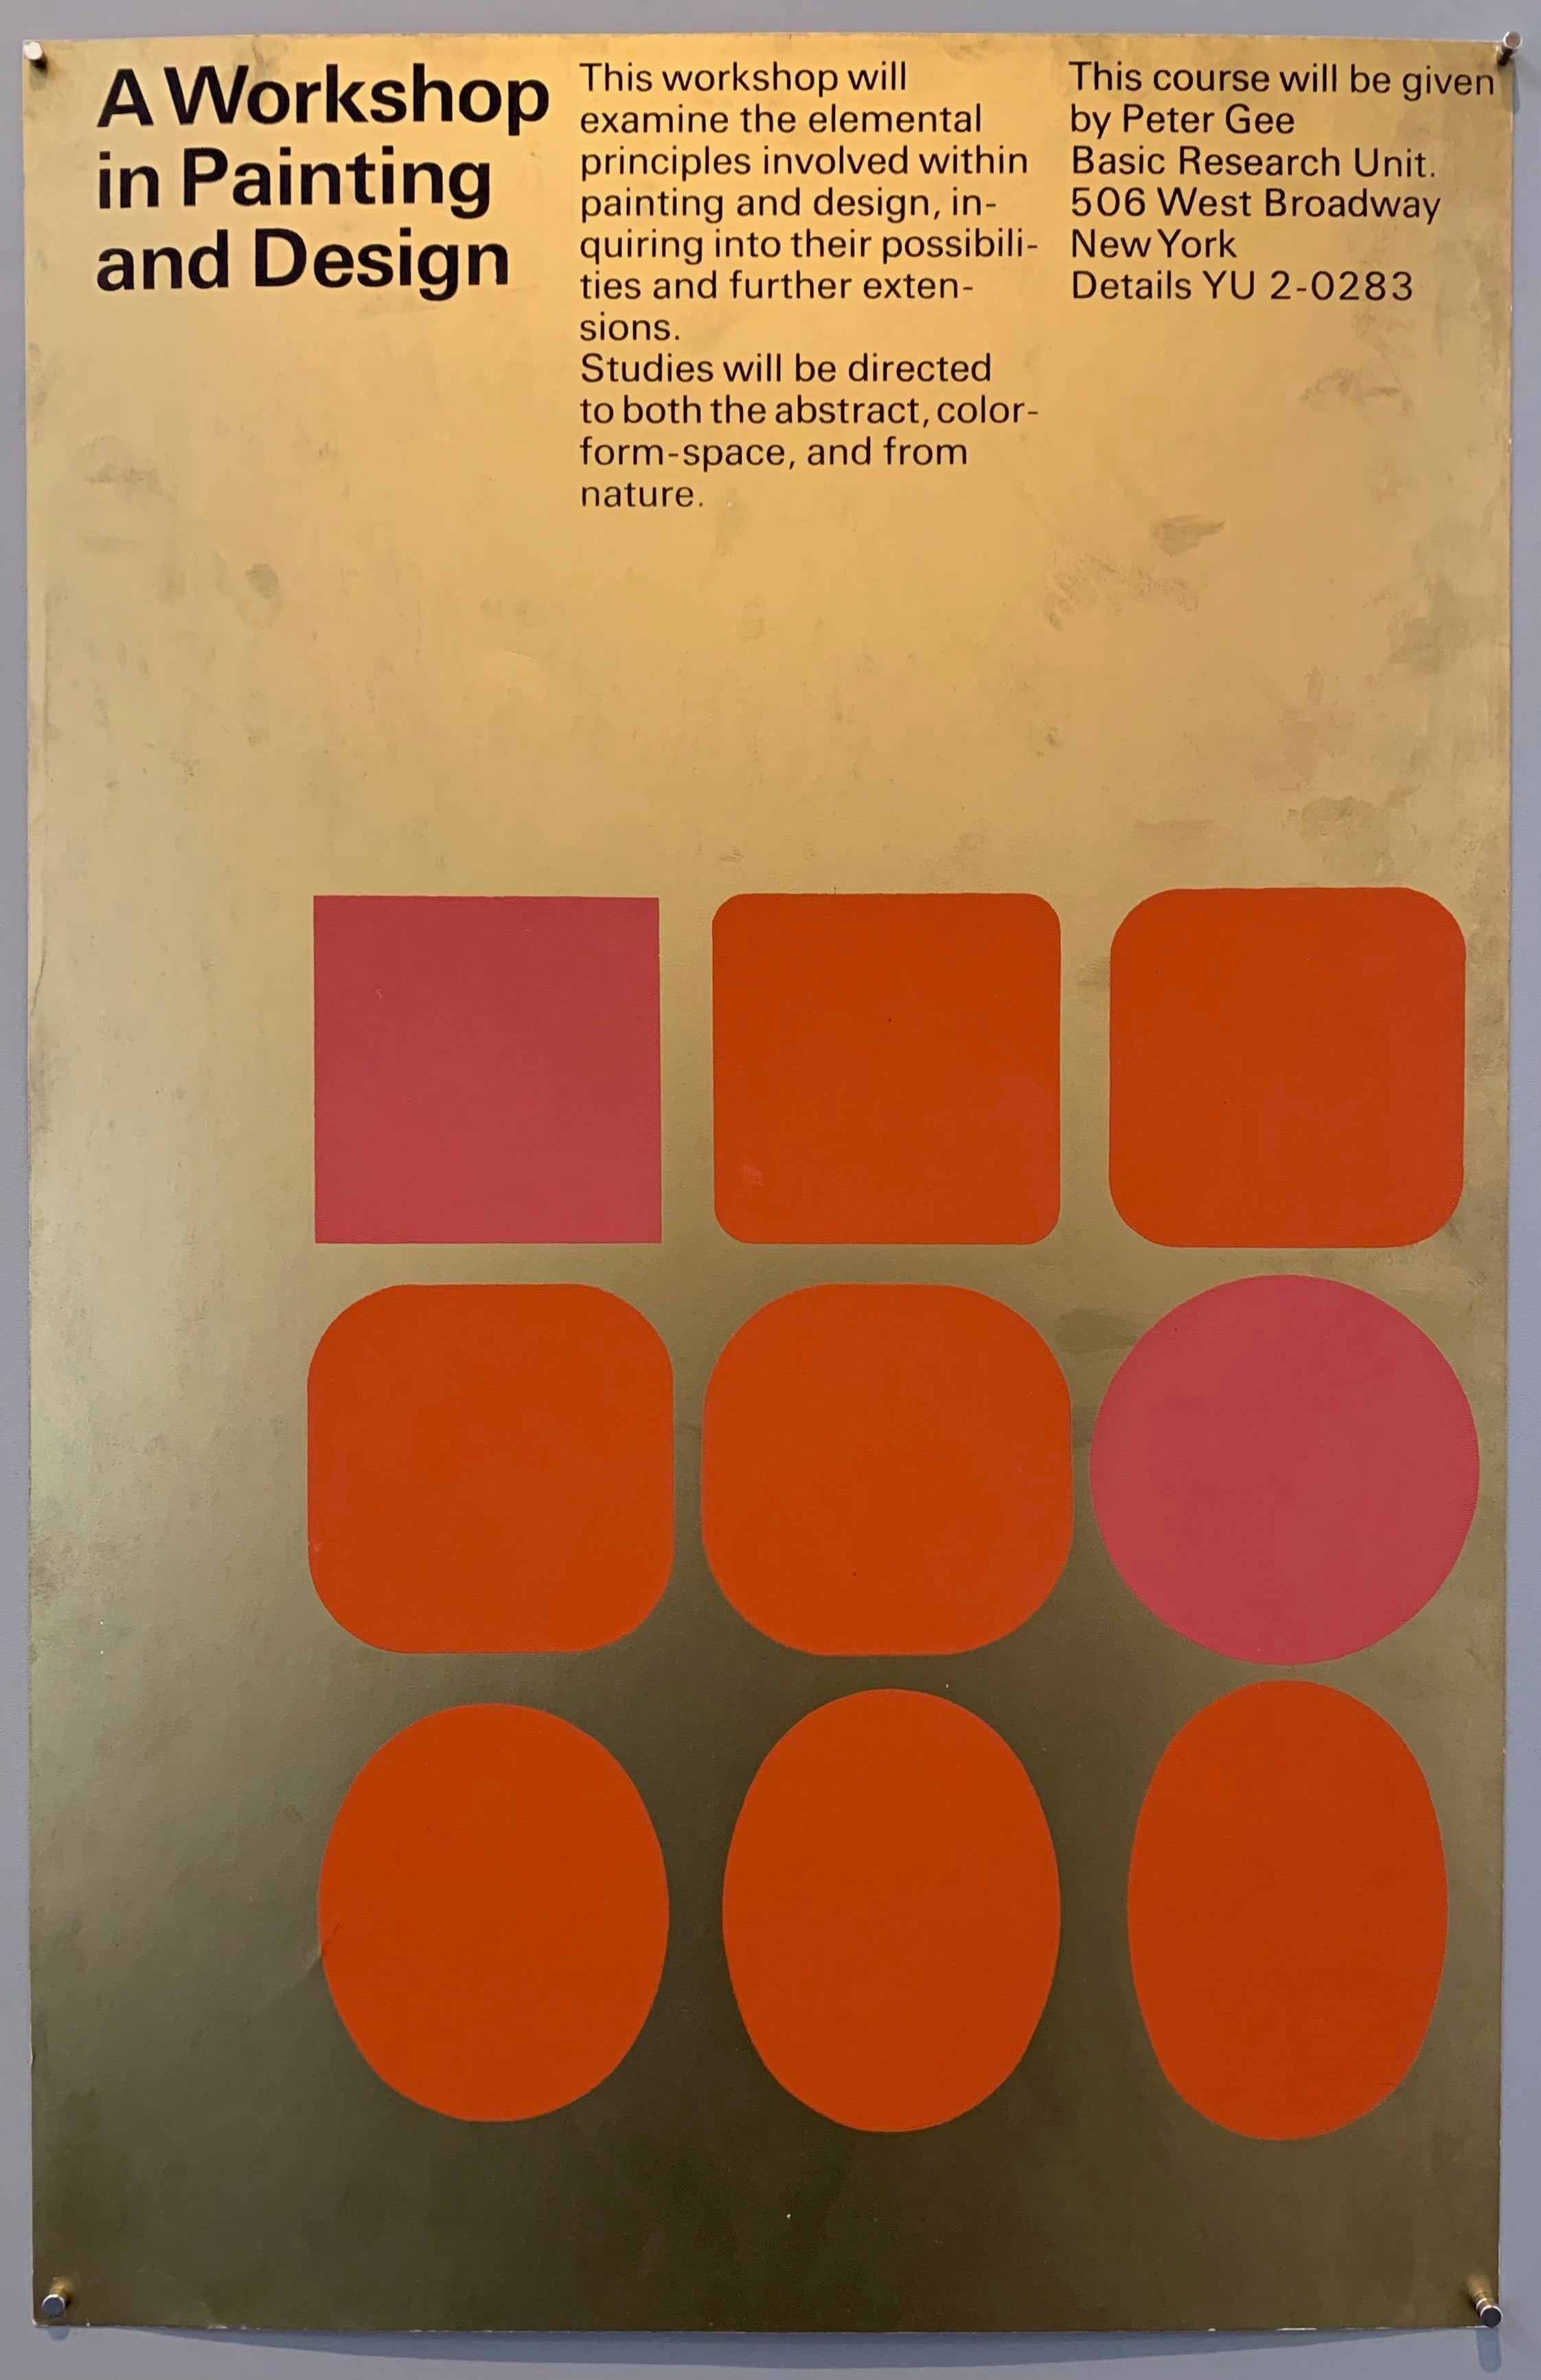 Gold poster with orange and pink squares and ovals